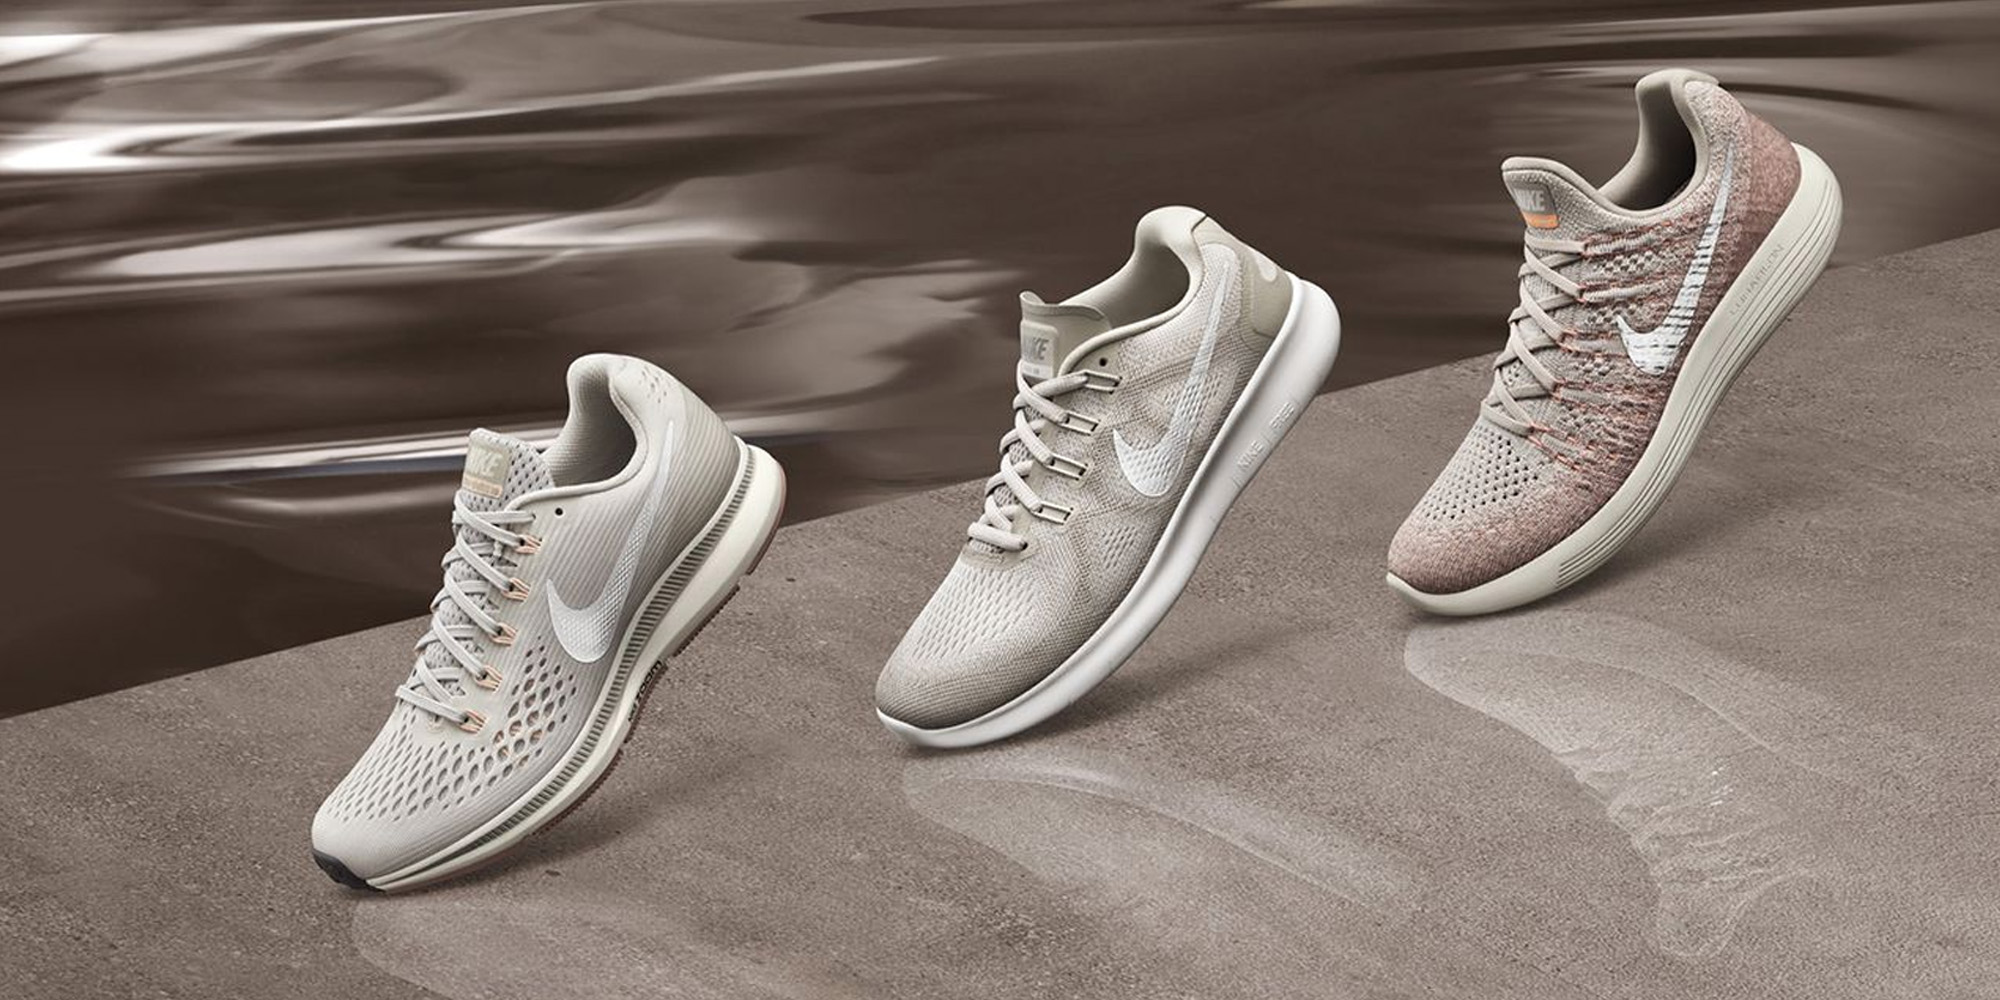 Zappos Nike Sale offers thousands of items at up to 75% off from just $19: shoes, apparel, more